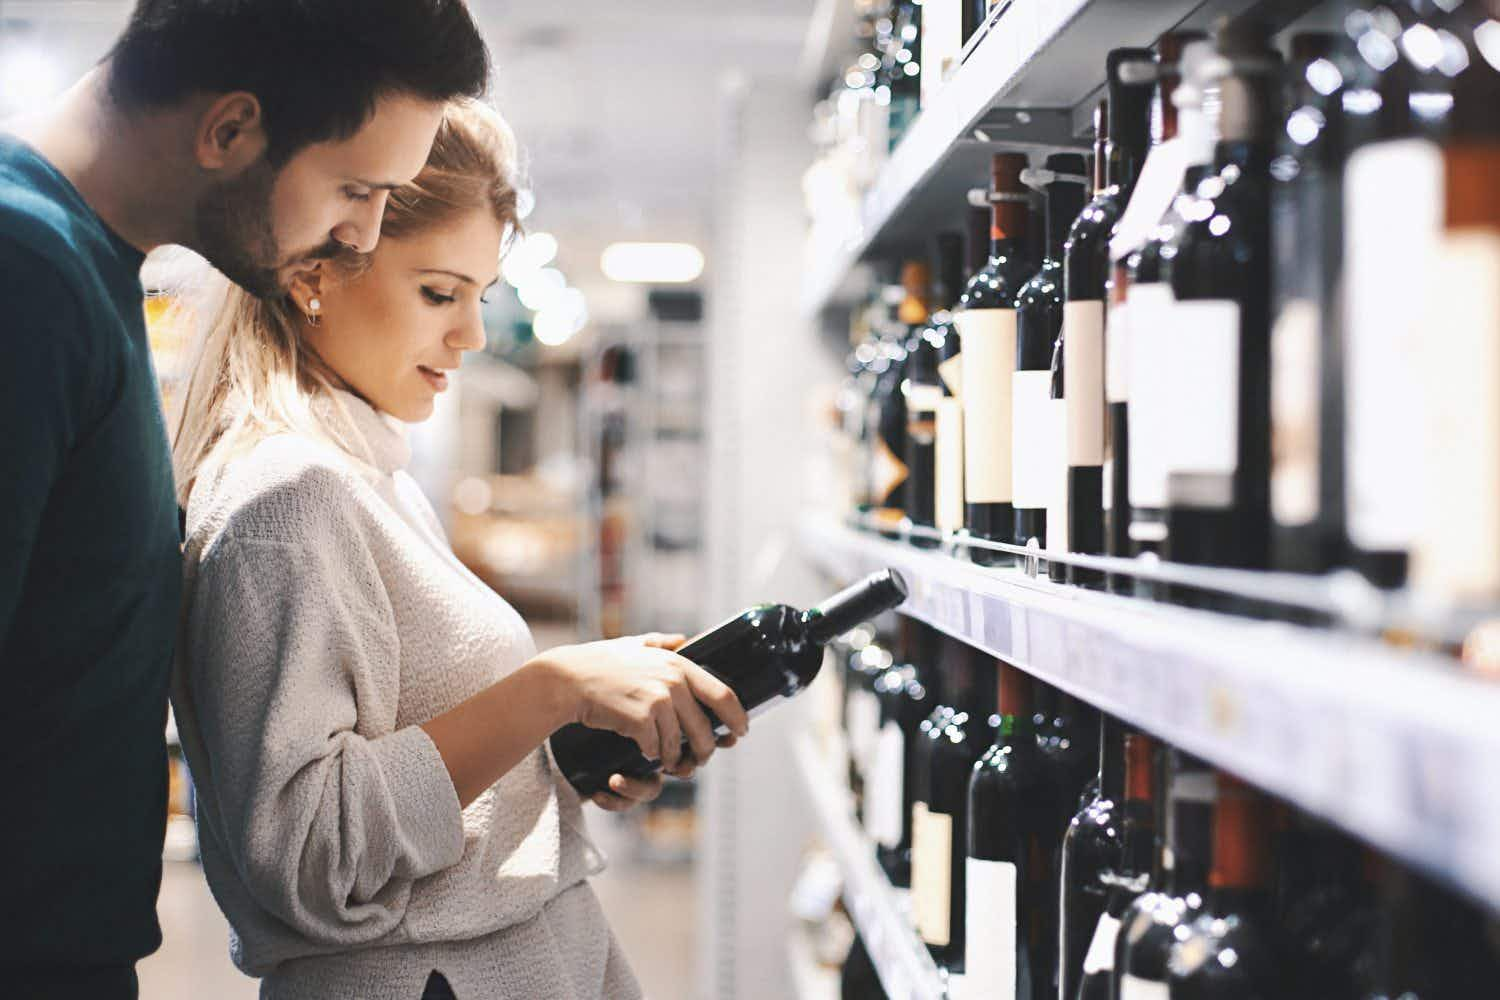 Visitors can now obtain a liquor licence to buy alcohol in Dubai